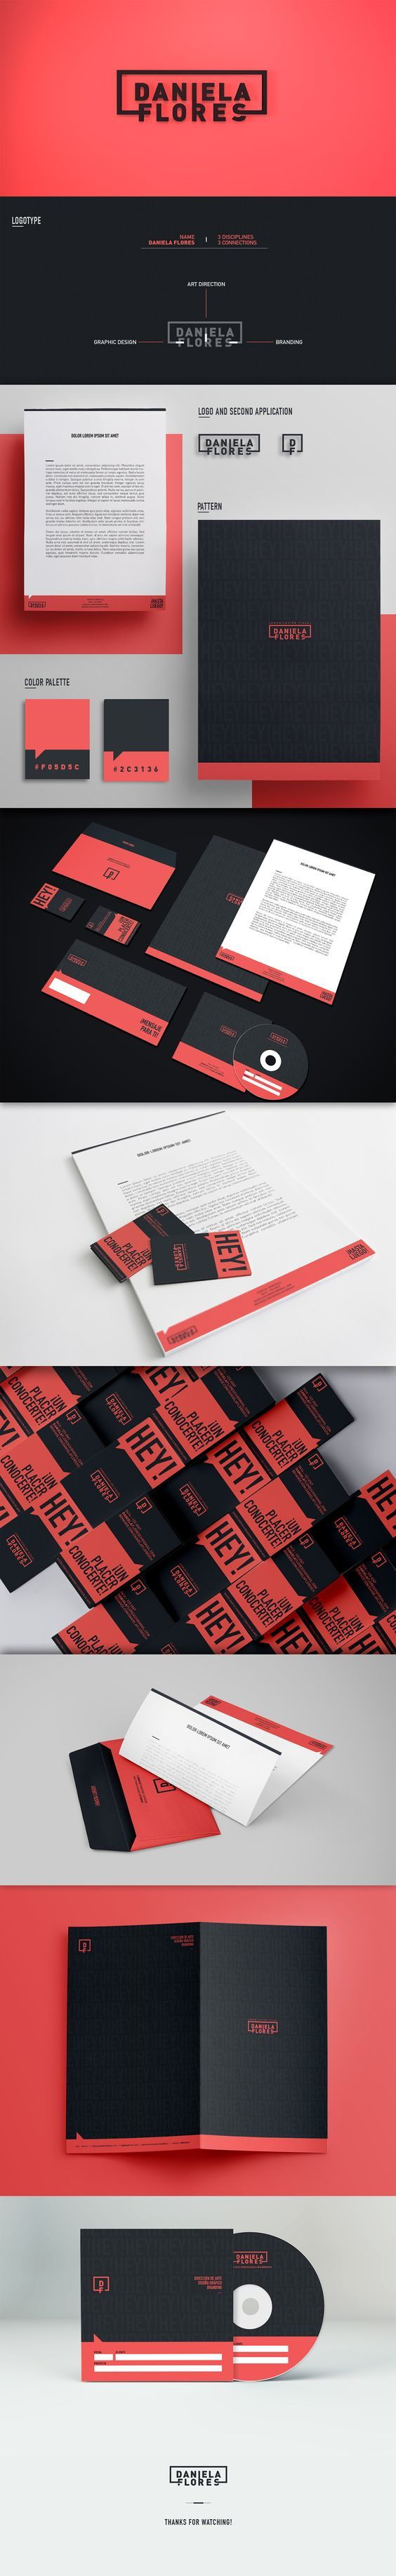 72 best Profesionista images on Pinterest | Gym, Graph design and ...